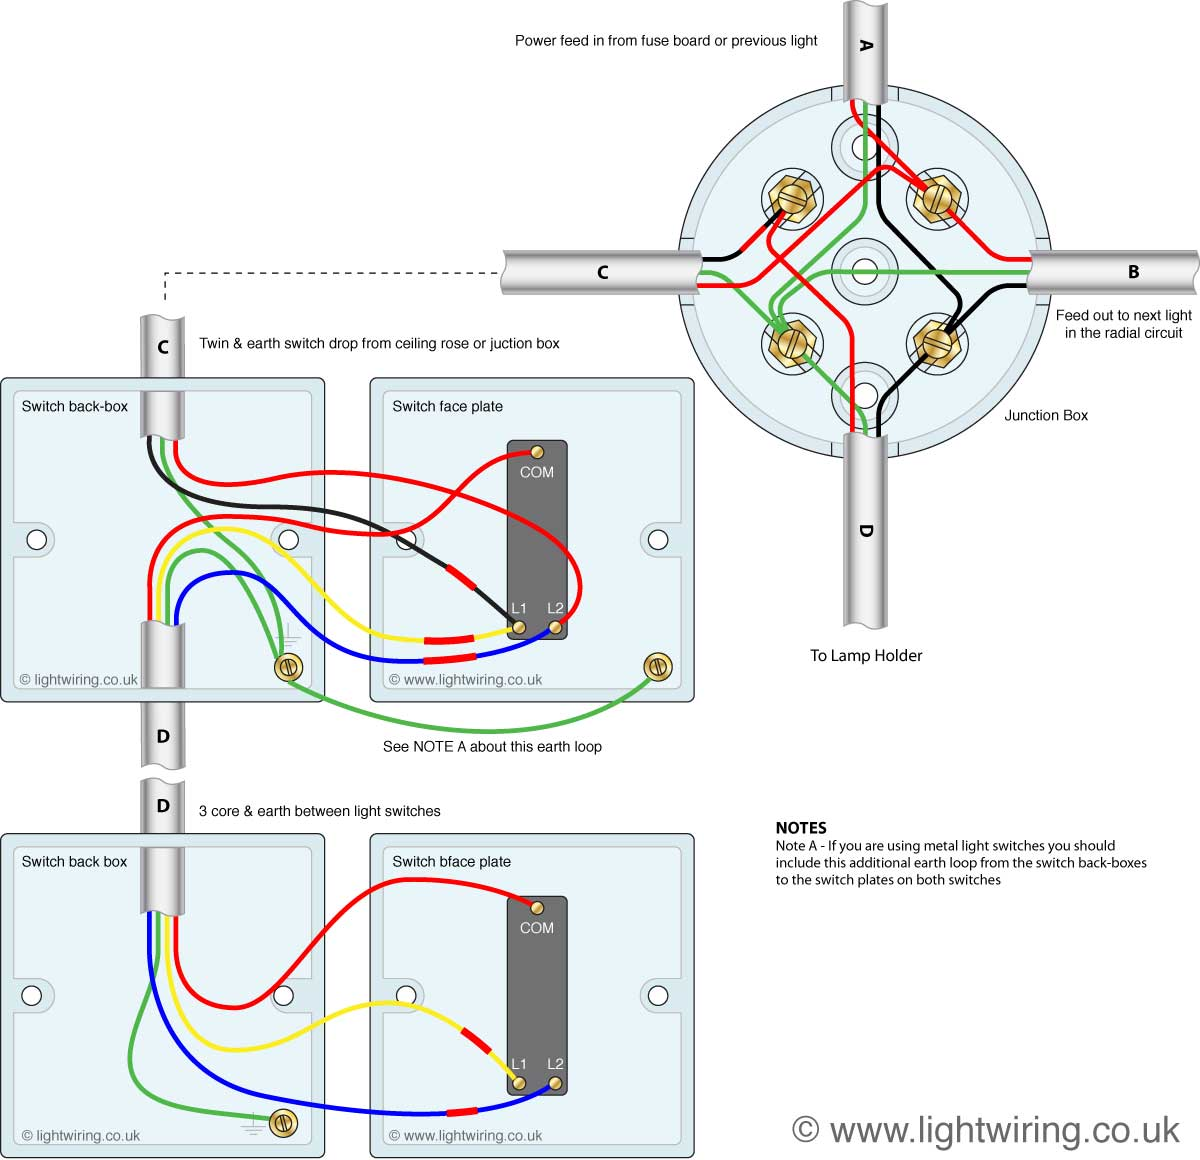 3 way switching from junction box 3 core and earth wiring diagram earth core chart \u2022 wiring diagrams  at gsmx.co